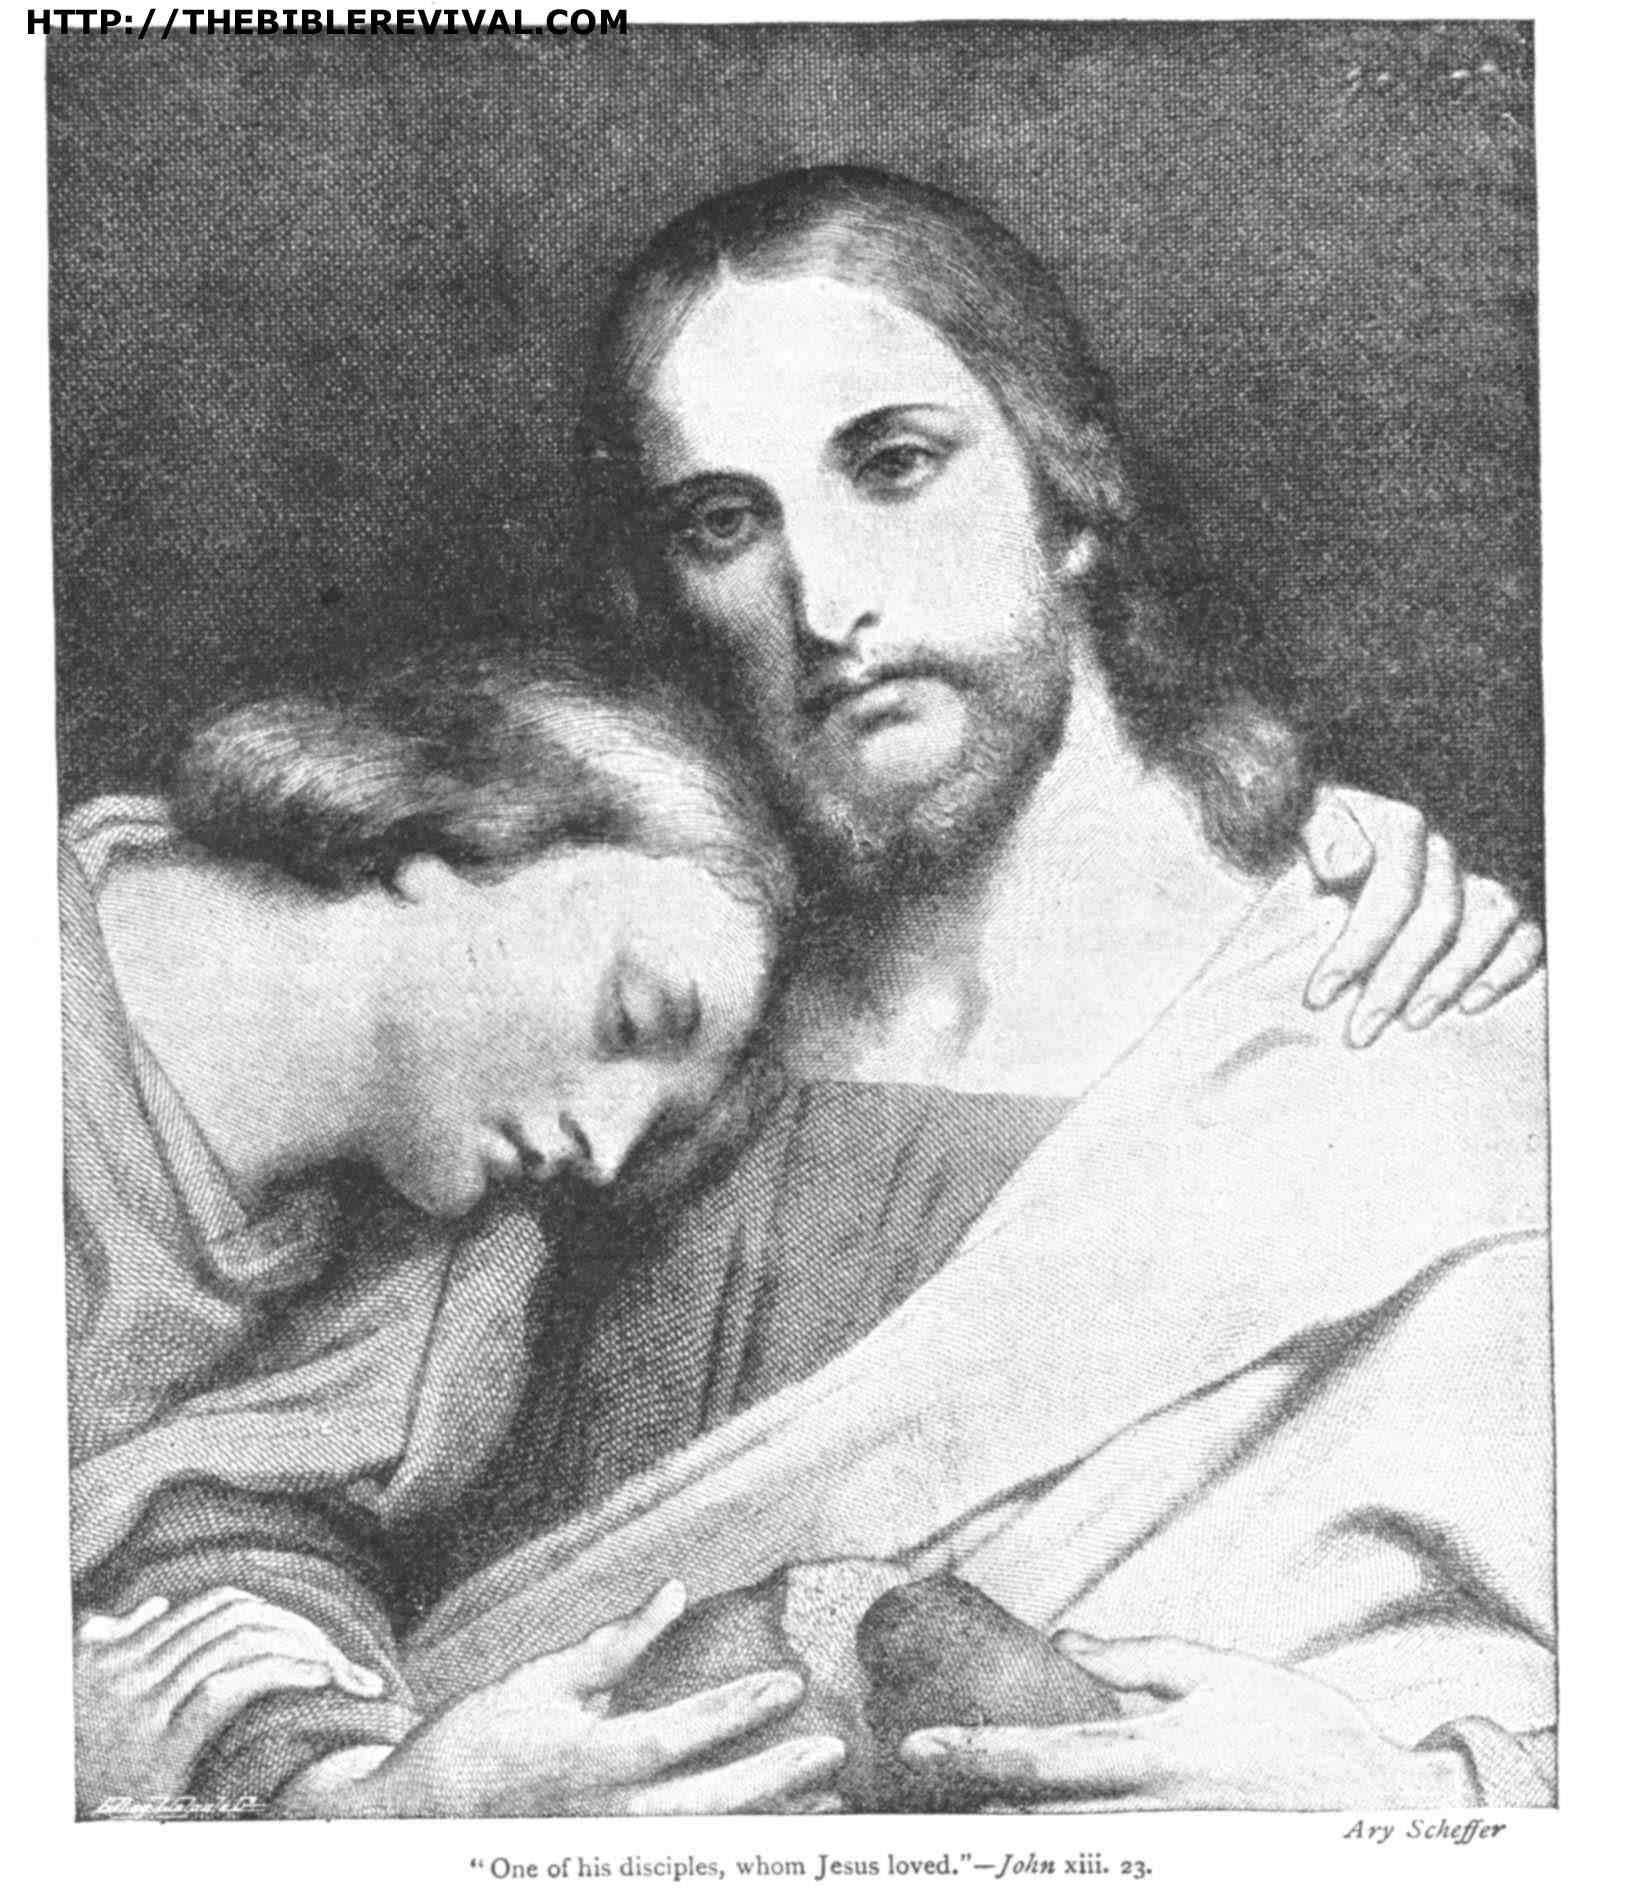 a history of john the disciple of jesus John boanerges son of zebedee and salome, brother of james, the apostle he was known as this beloved disciple he was known as this beloved disciple a fisherman who lived in bethsaida, capernaum and jerusalem.